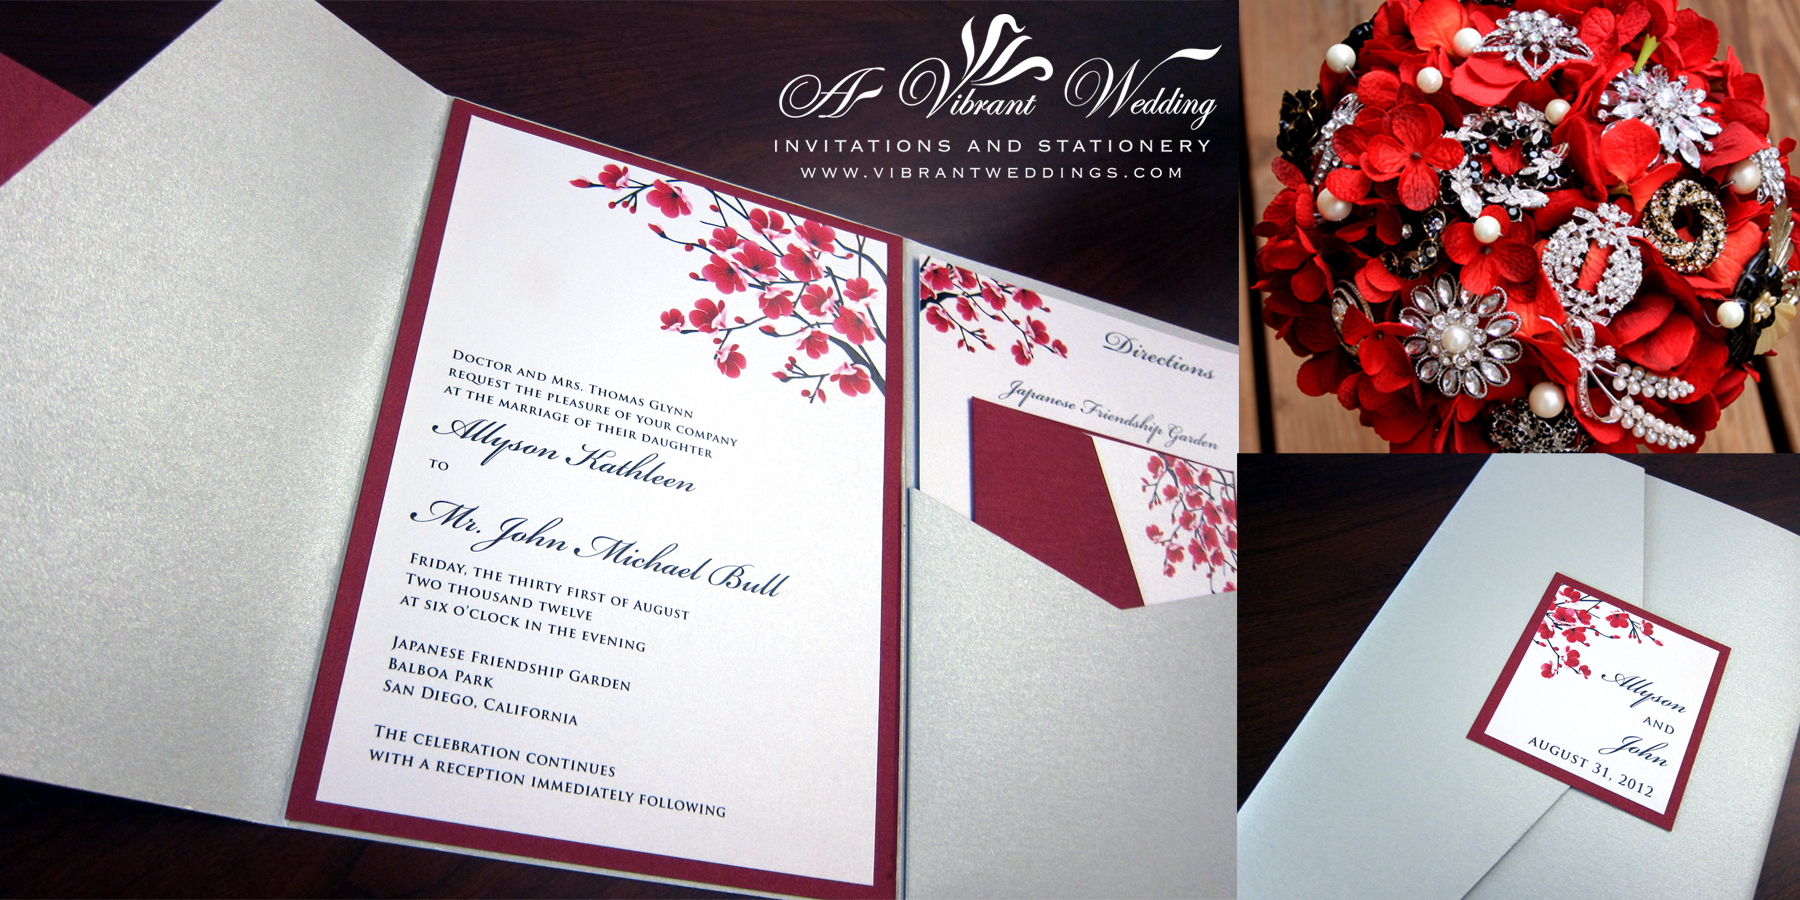 Teal Wedding Invites was amazing invitations layout